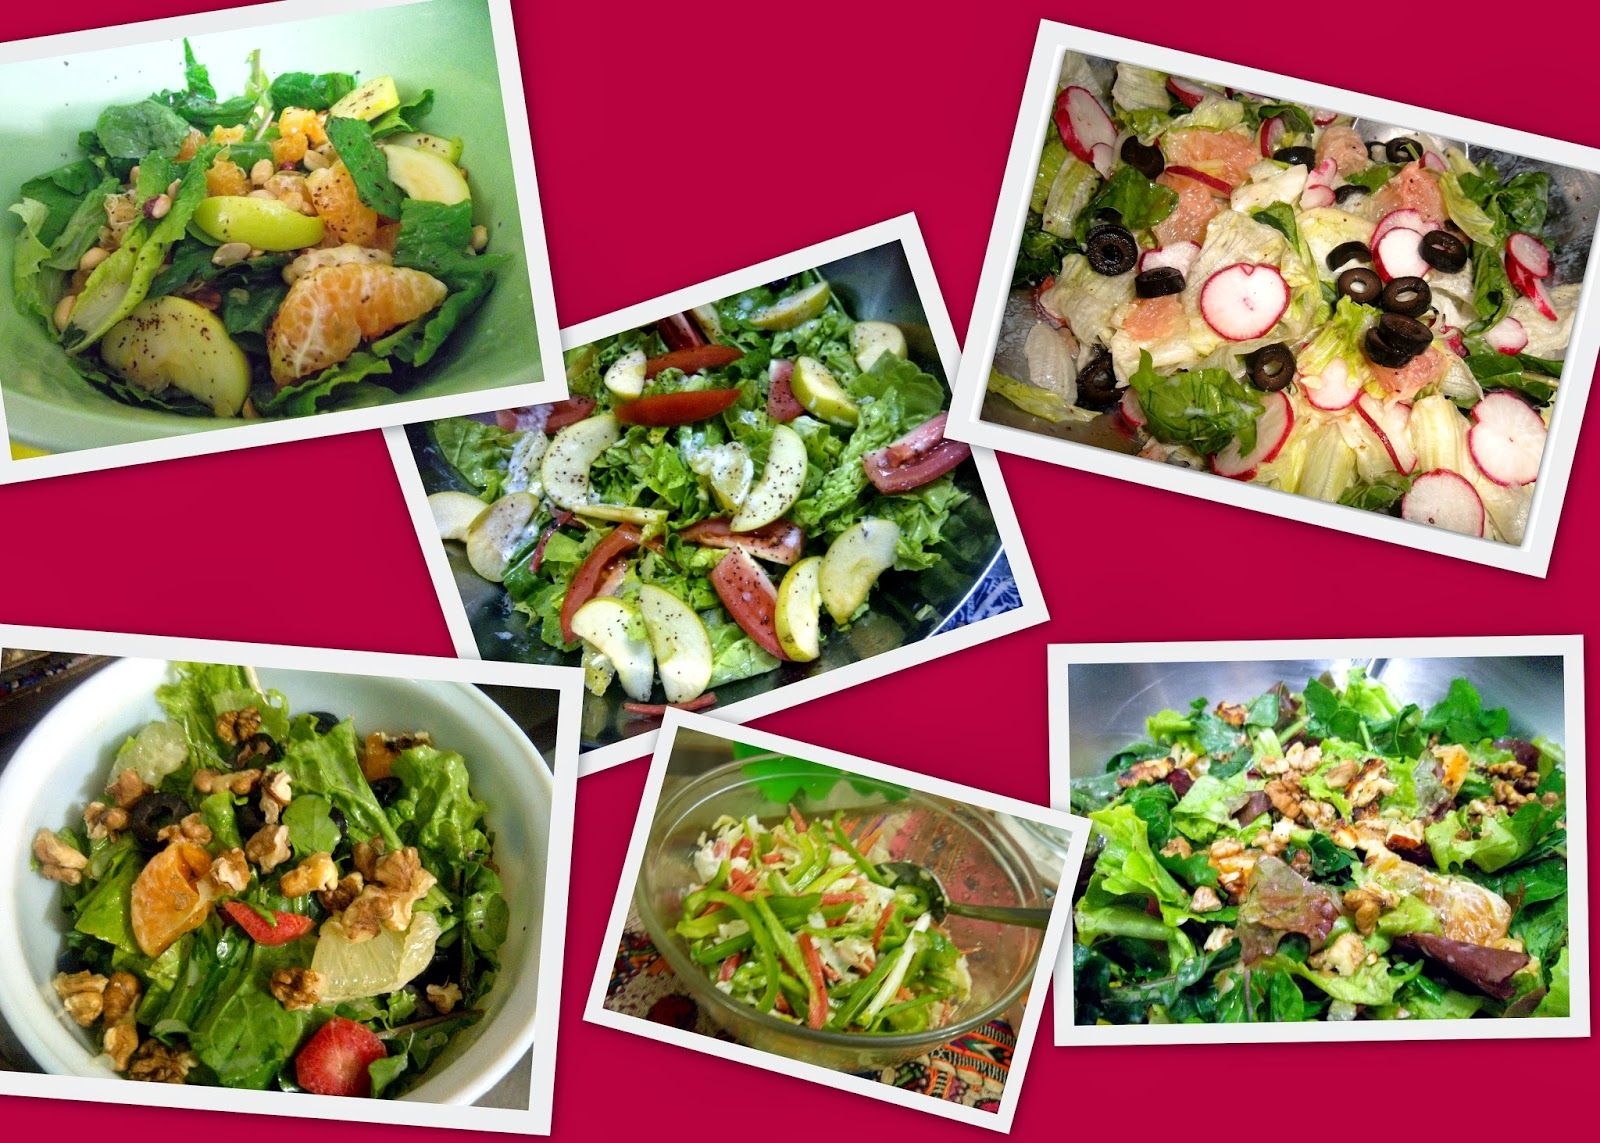 Salad 101 - Types of Salad Greens